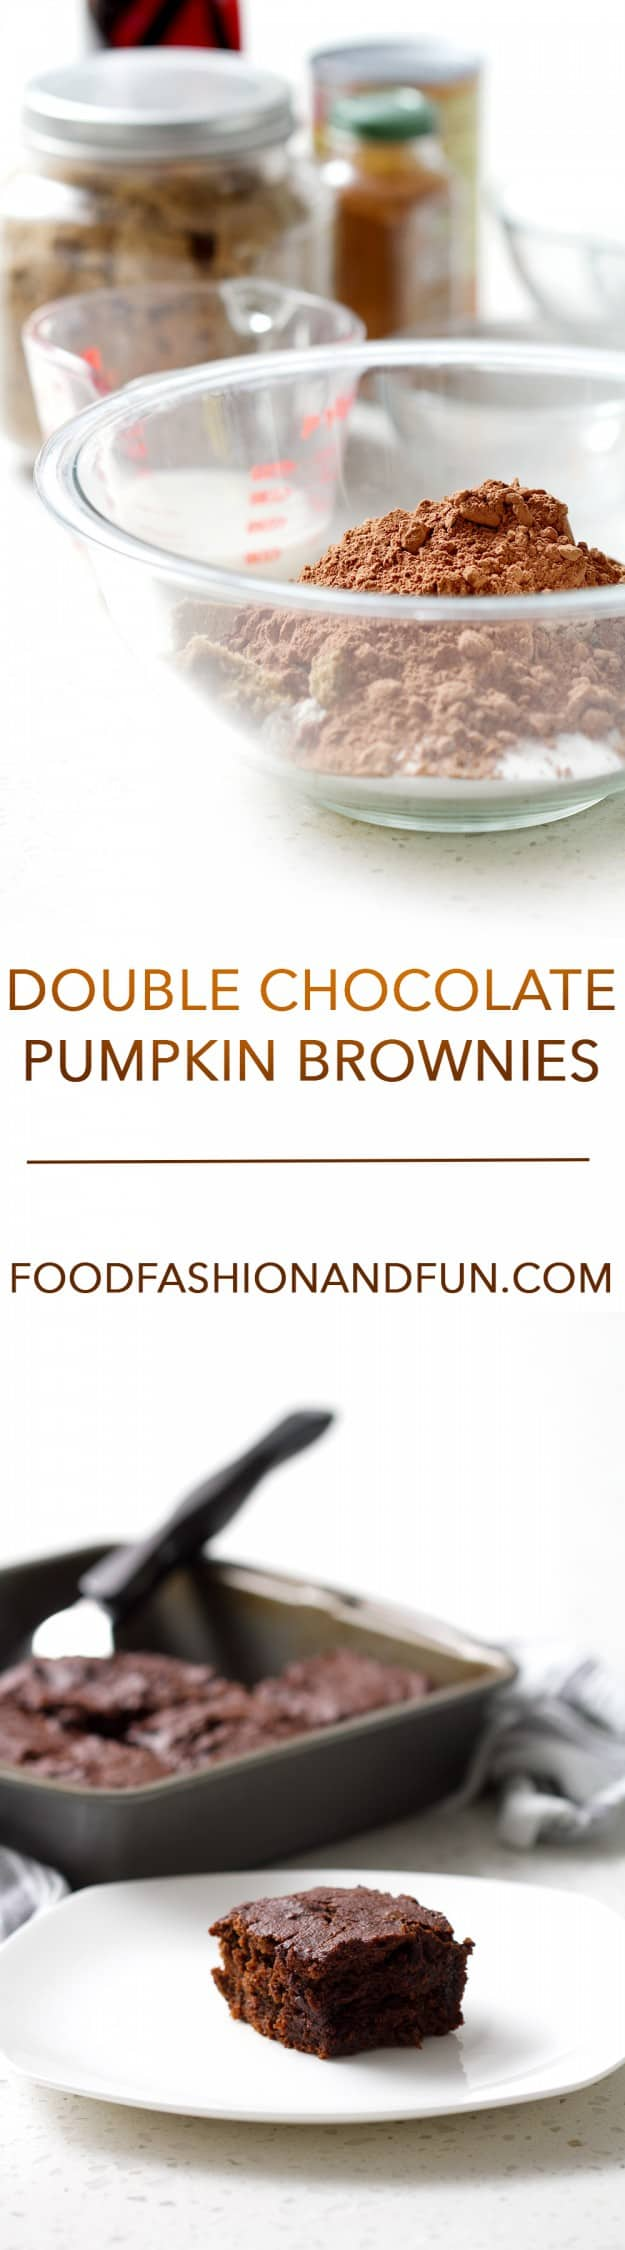 Double Chocolate Pumpkin Brownies. They are free of eggs and oil but uses pumpkin and spices to add flavor. It's a lighter brownie (but not a cake) that doesn't skimp on the fudgy goodness that is brownies.